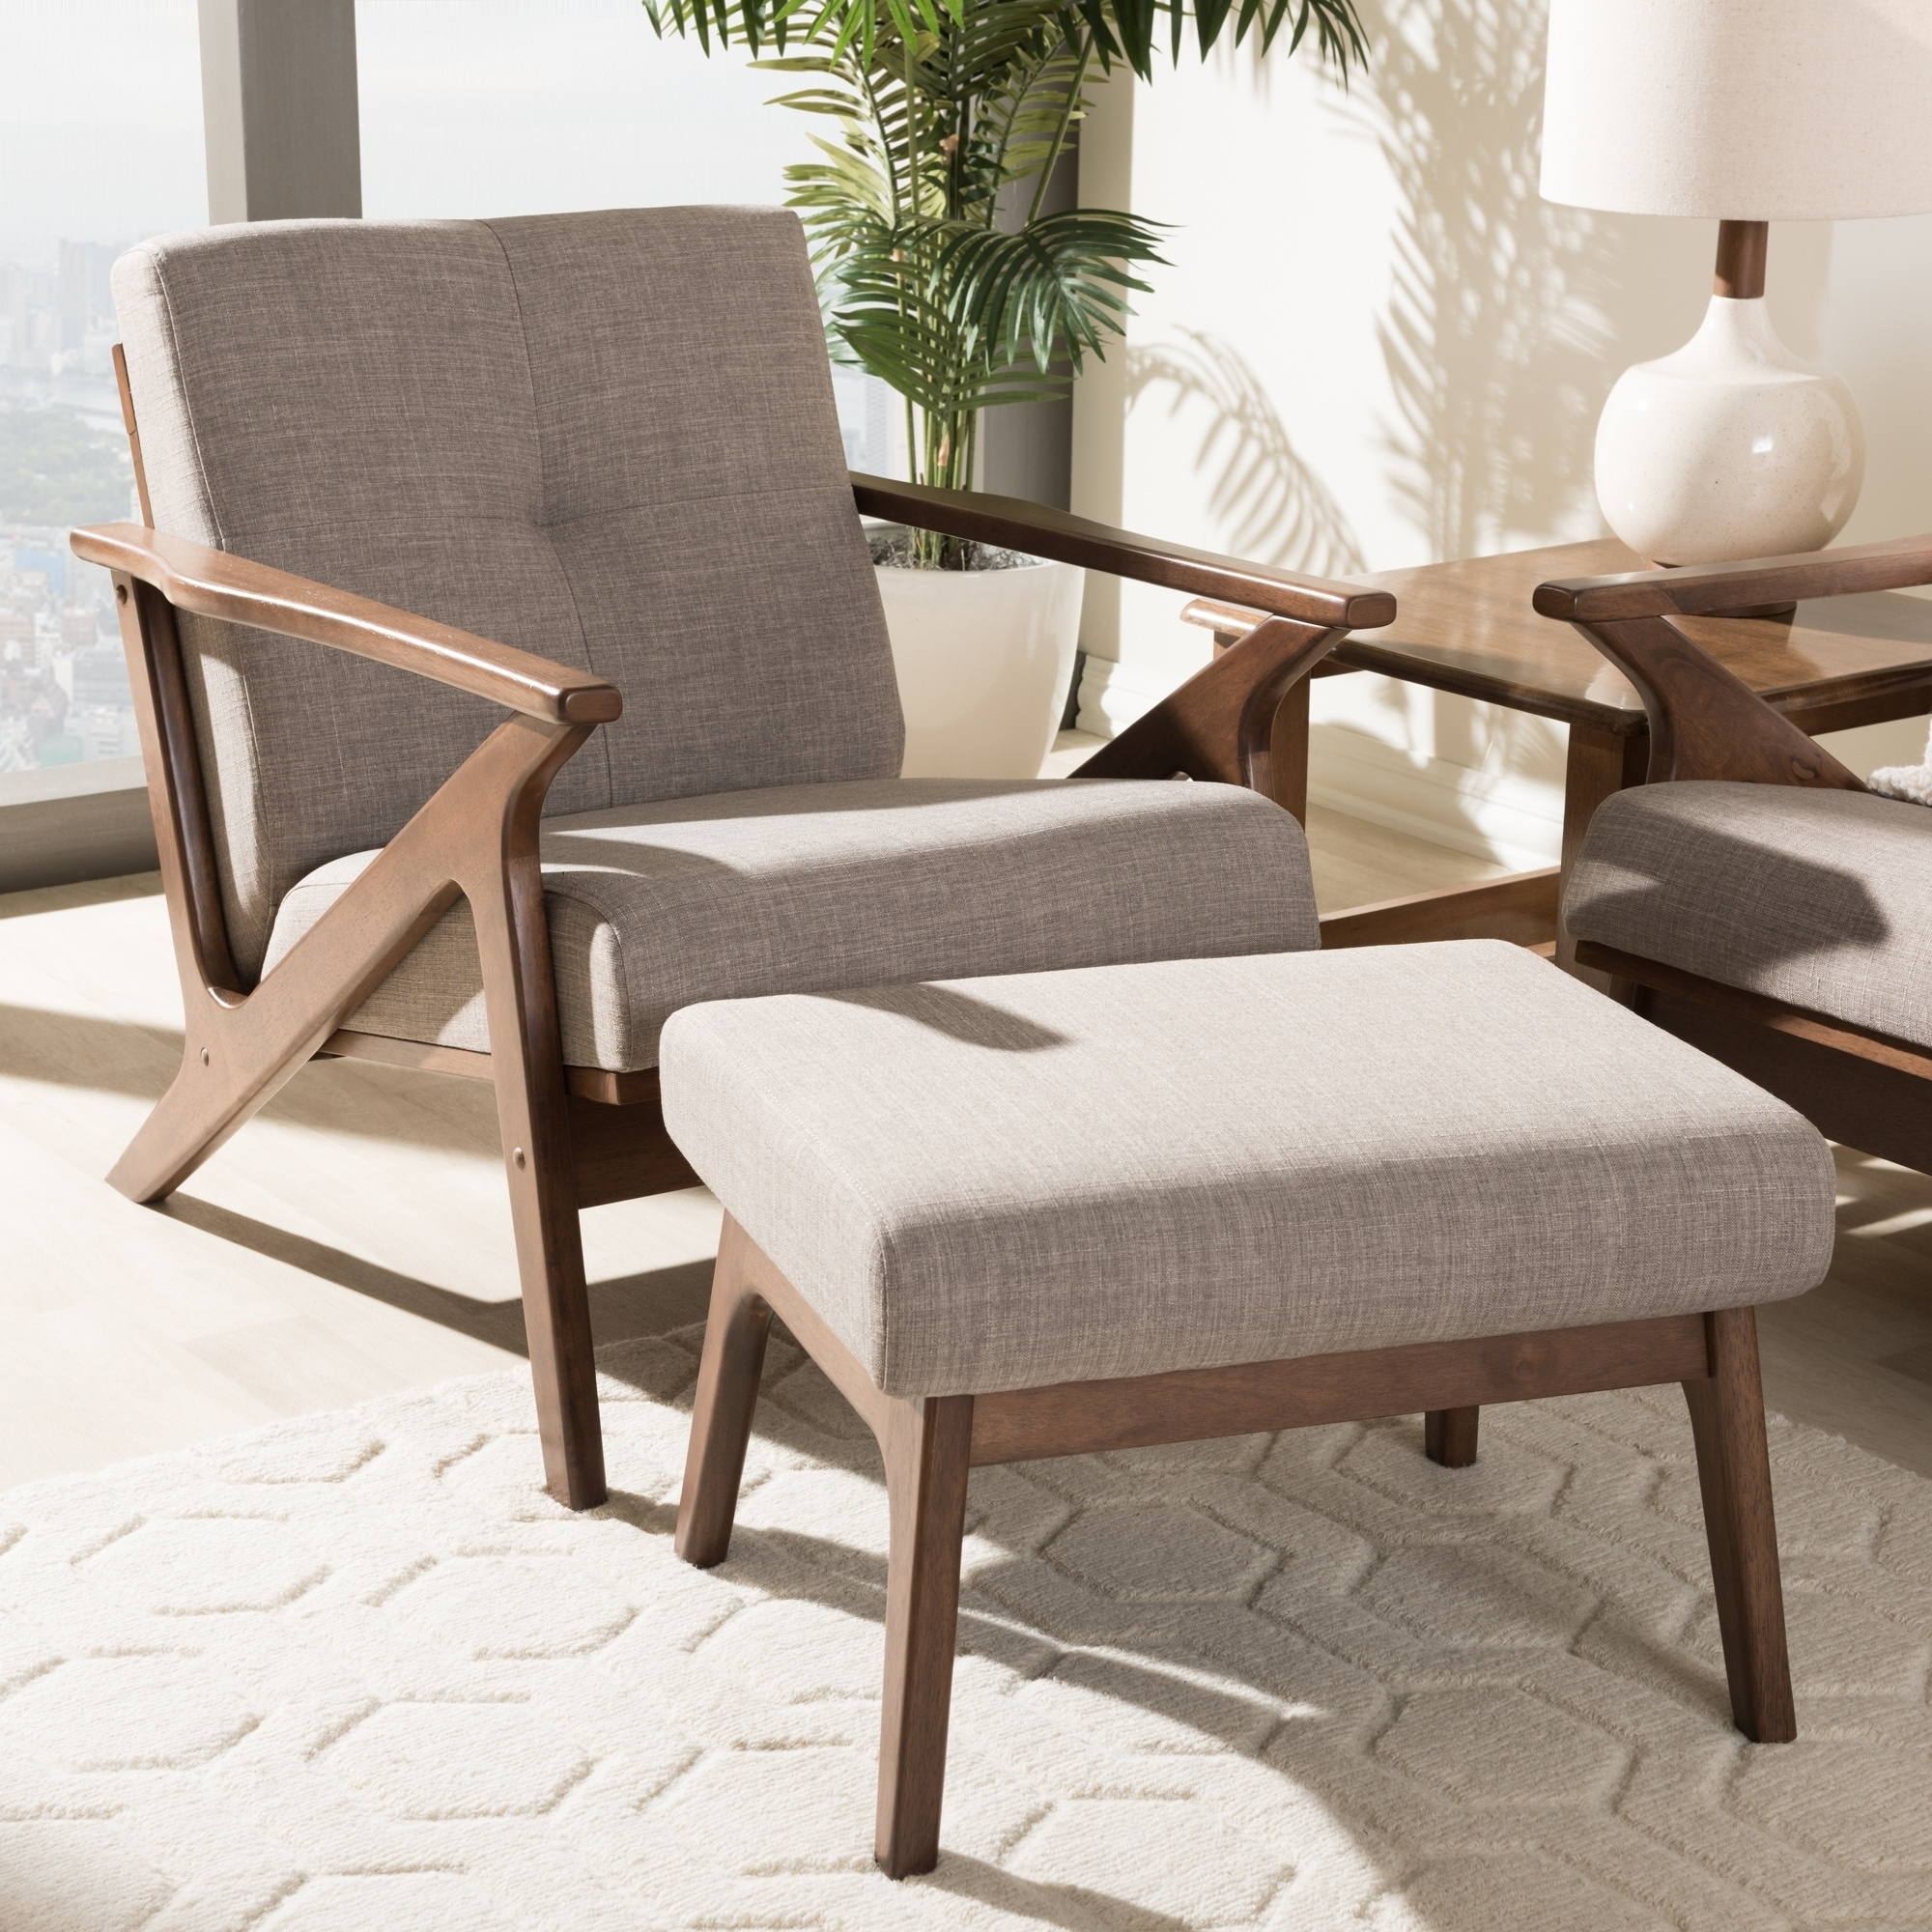 Chair And Ottoman Set Mid Century Lounge Chair And Ottoman Set By Baxton Studio